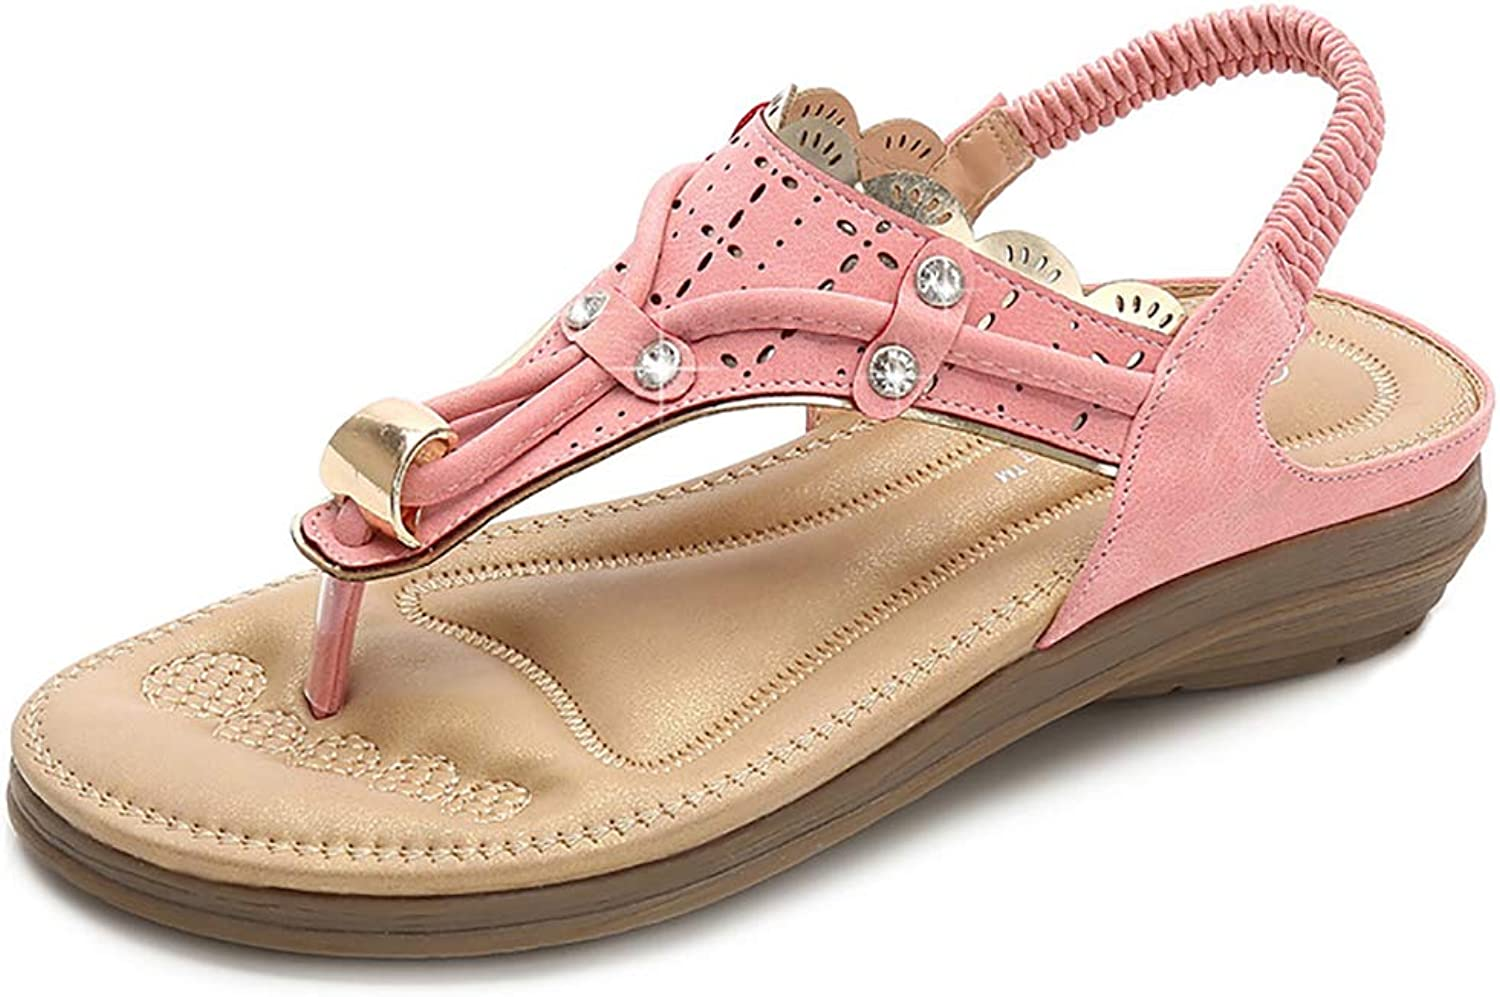 Women Summer Low Flat Heel Flip Flop,Sandals Bohemia shoes with Rhinestone Thong Sandals,Women's Orthotic Sandals